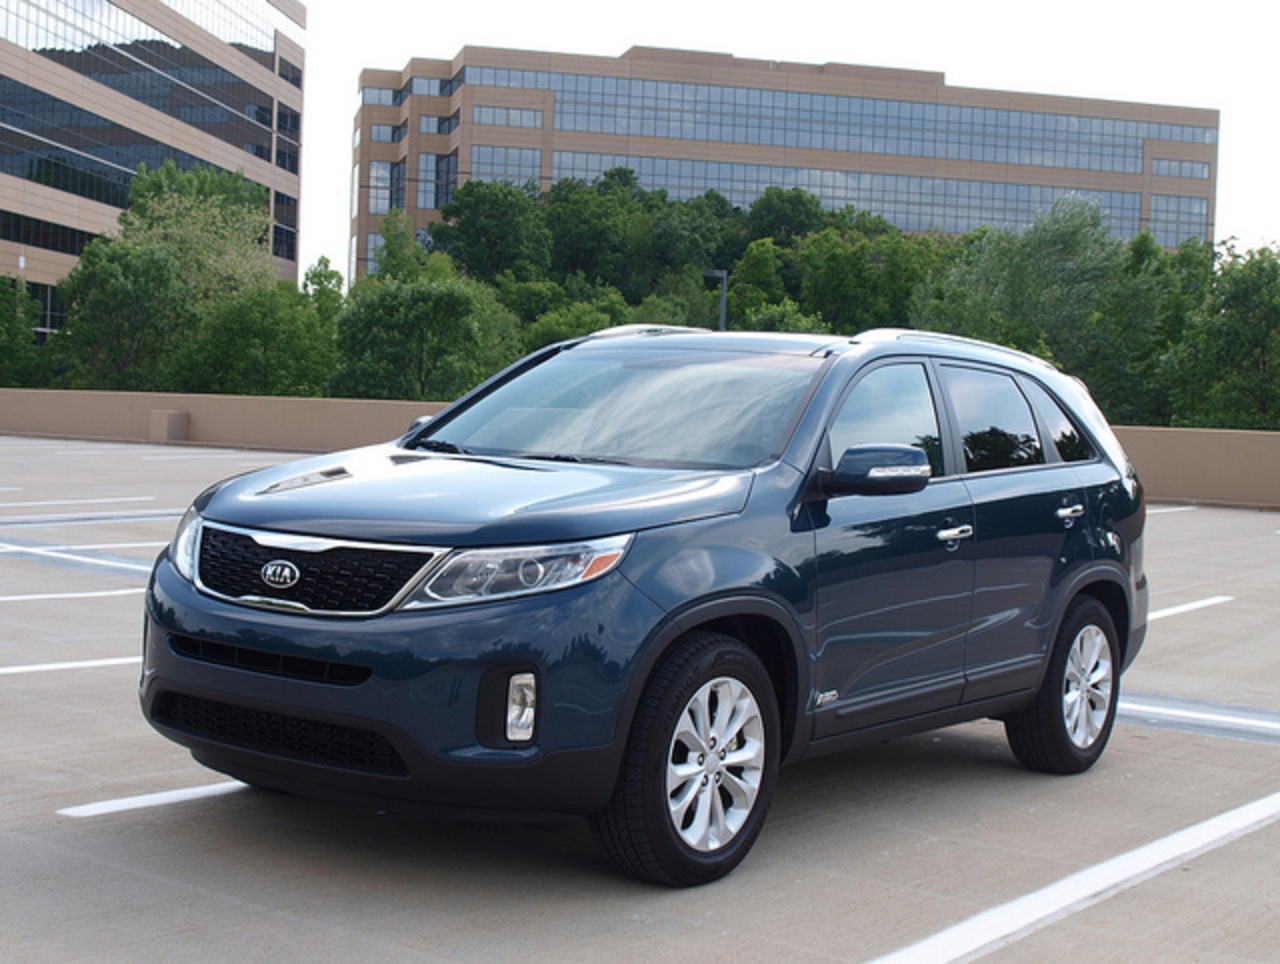 2014 Kia Sorento EX V6 AWD 10 | Flickr - Photo Sharing!